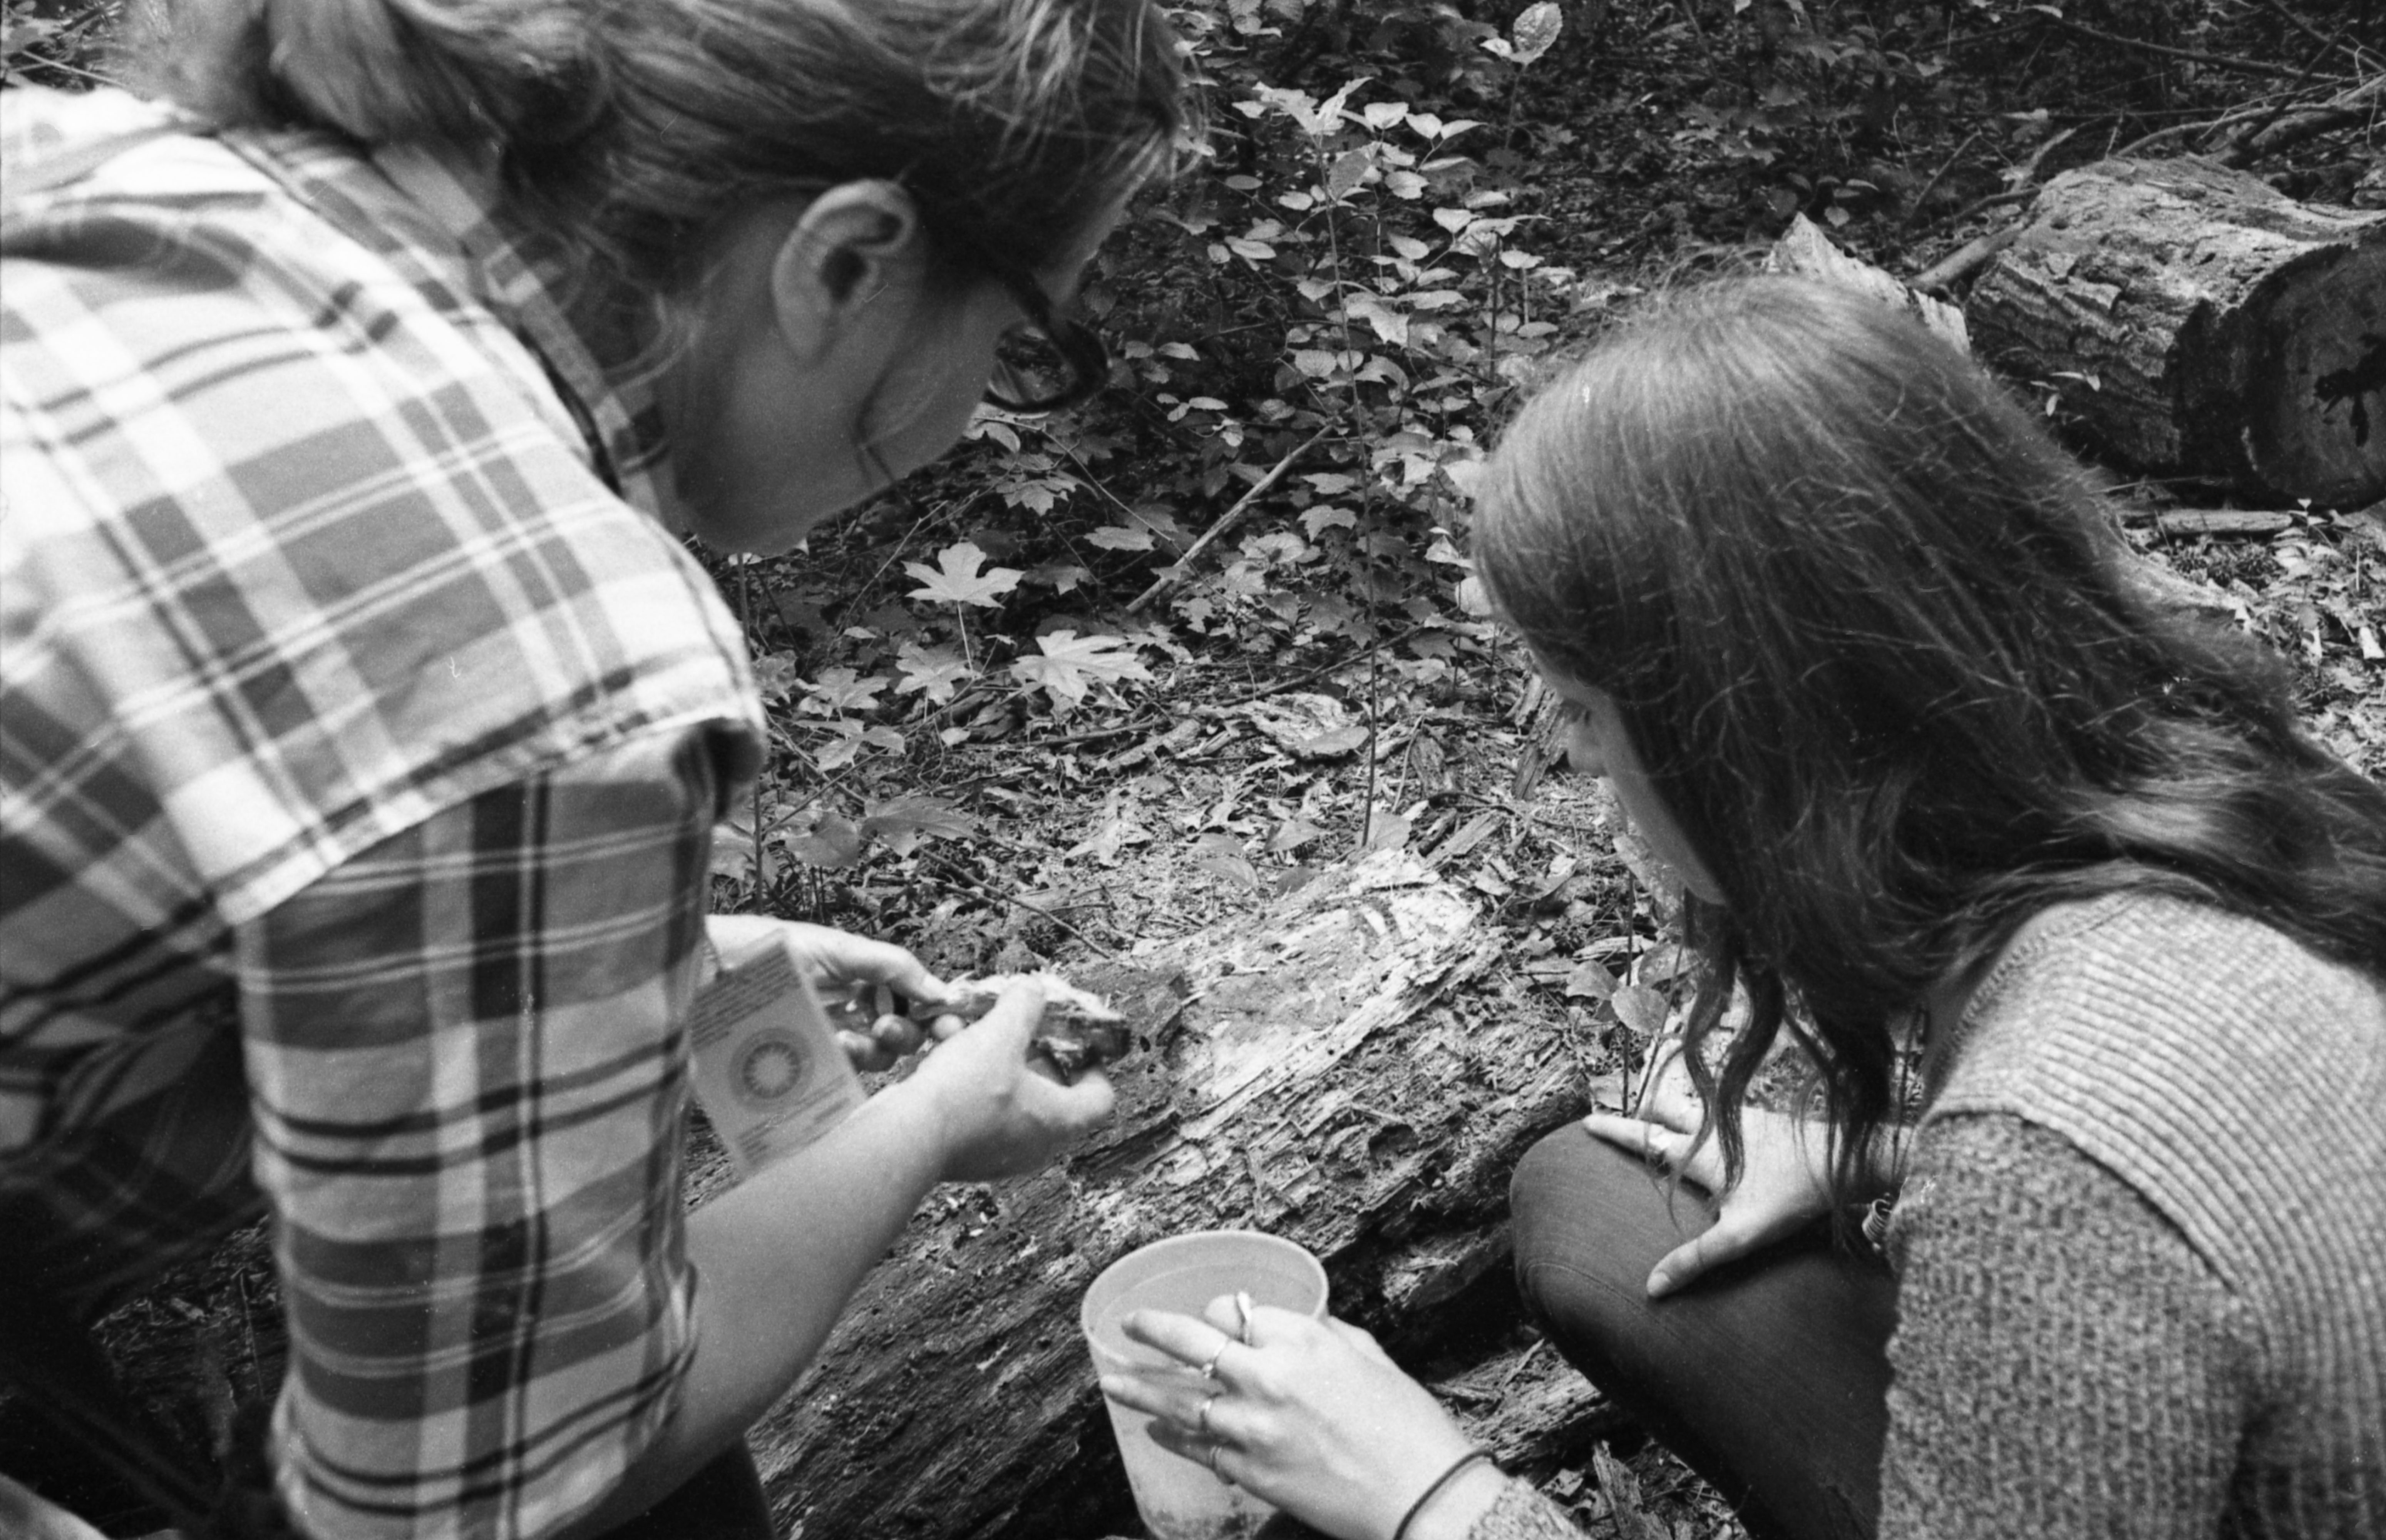 Gathering specimens in the field for the insect zoo at the National Museum of Natural History, August 8, 1972, by Harry Neufeld.